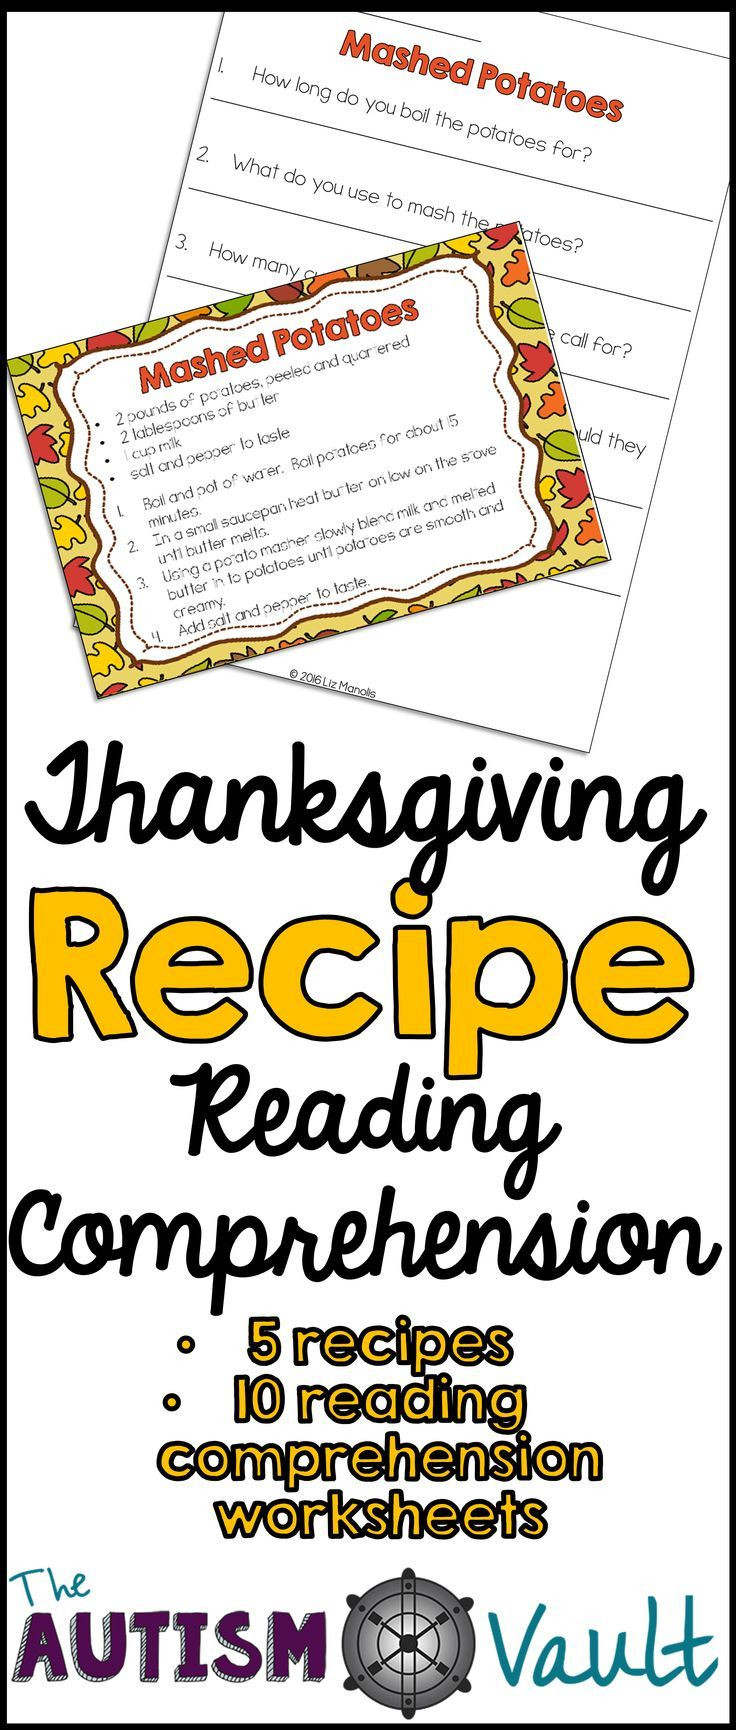 Recipe Reading Comprehension Worksheets Thanksgiving Recipe Reading Prehension